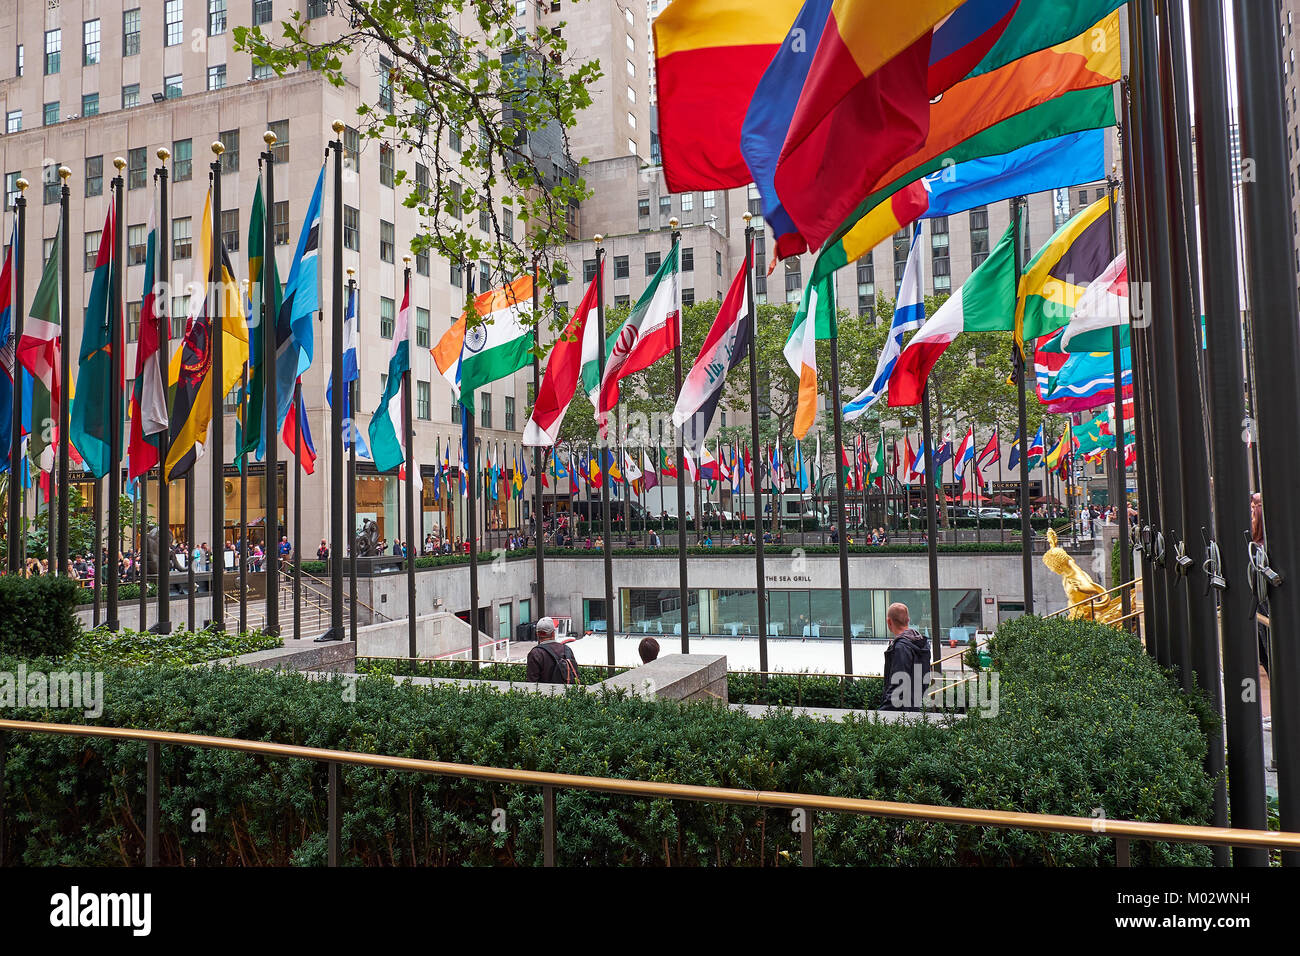 NEW YORK CITY - SEPTEMBER 29, 2016: Looking down on the Rockefeller Center Plaza where the famous ice rink is being - Stock Image